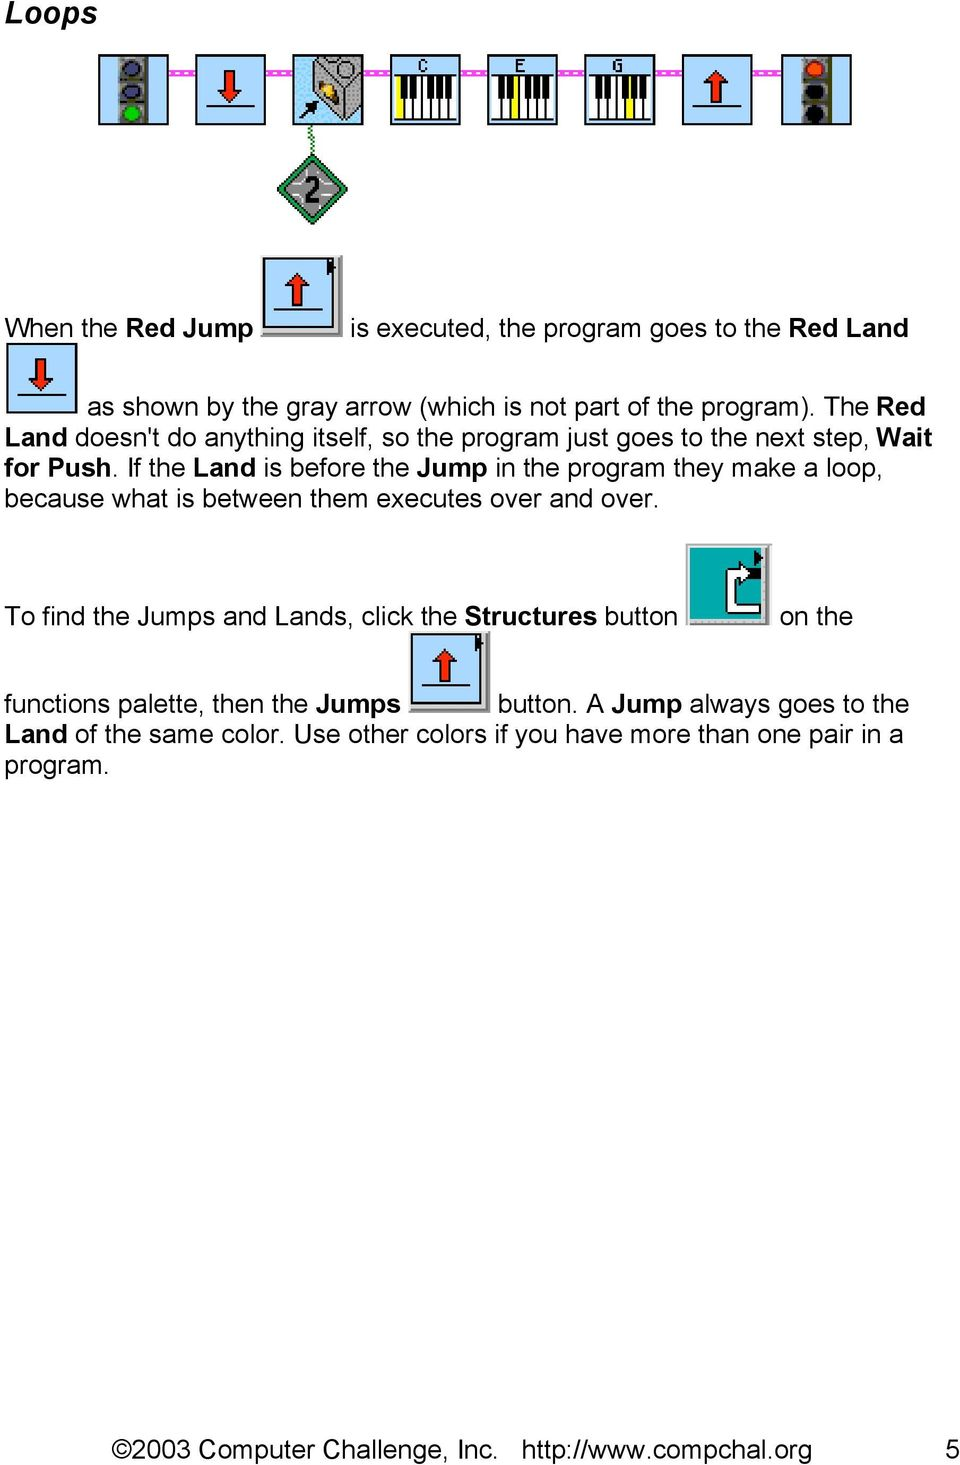 If the Land is before the Jump in the program they make a loop, because what is between them executes over and over.